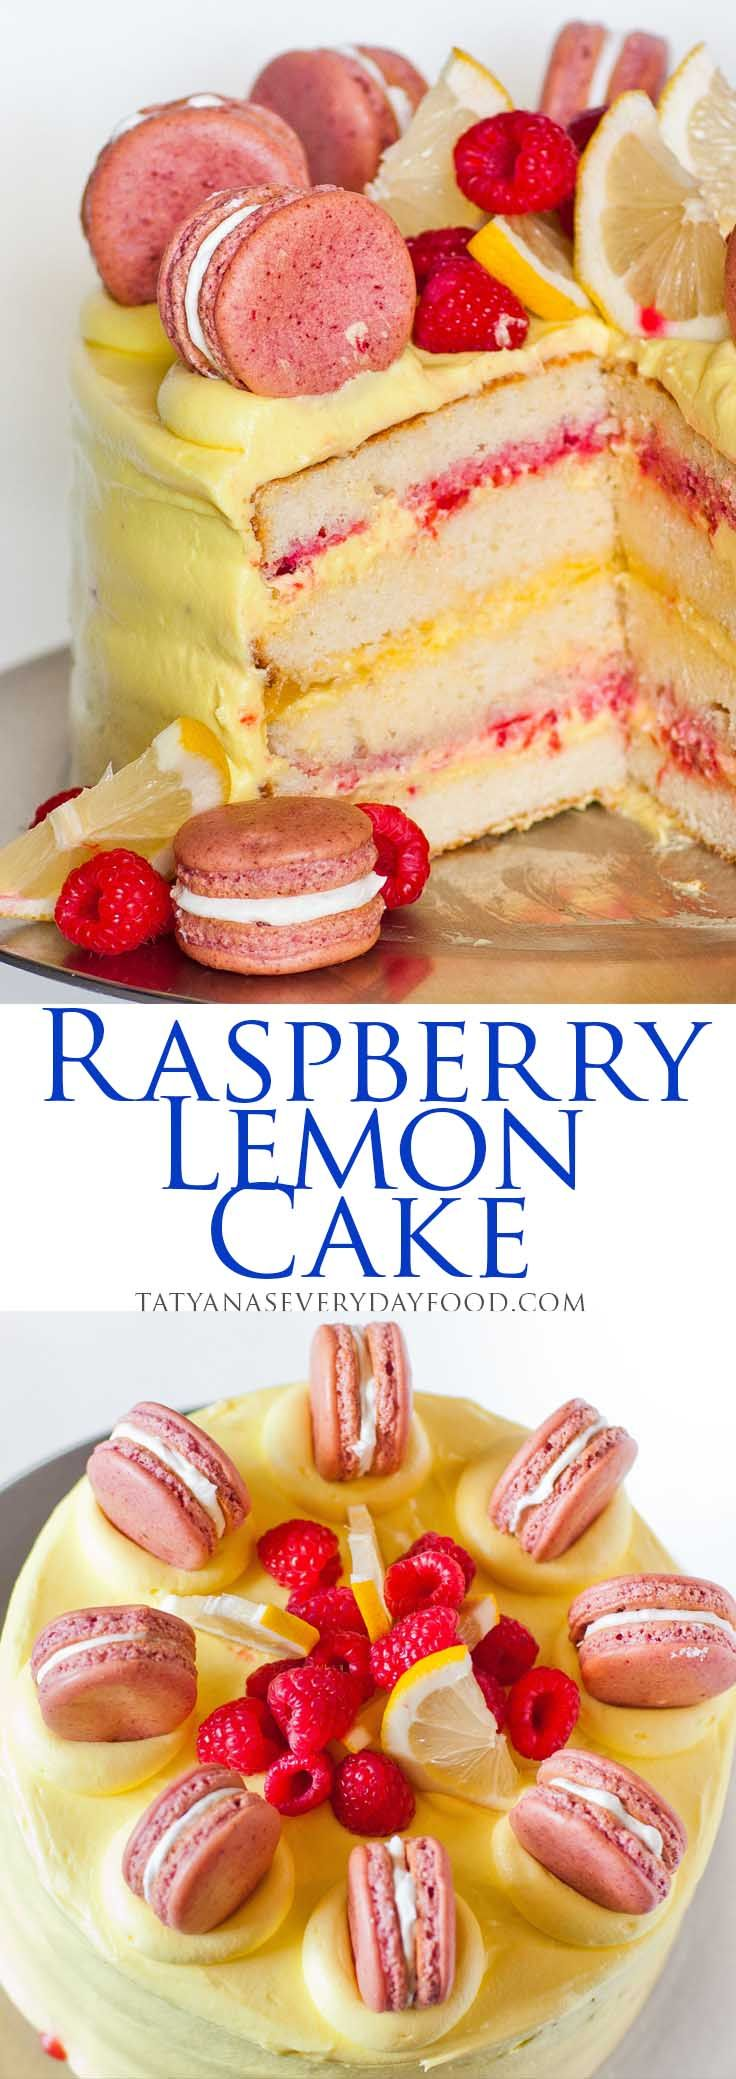 Raspberry Lemon Cake with video recipe {Tatyana's Everyday Food}